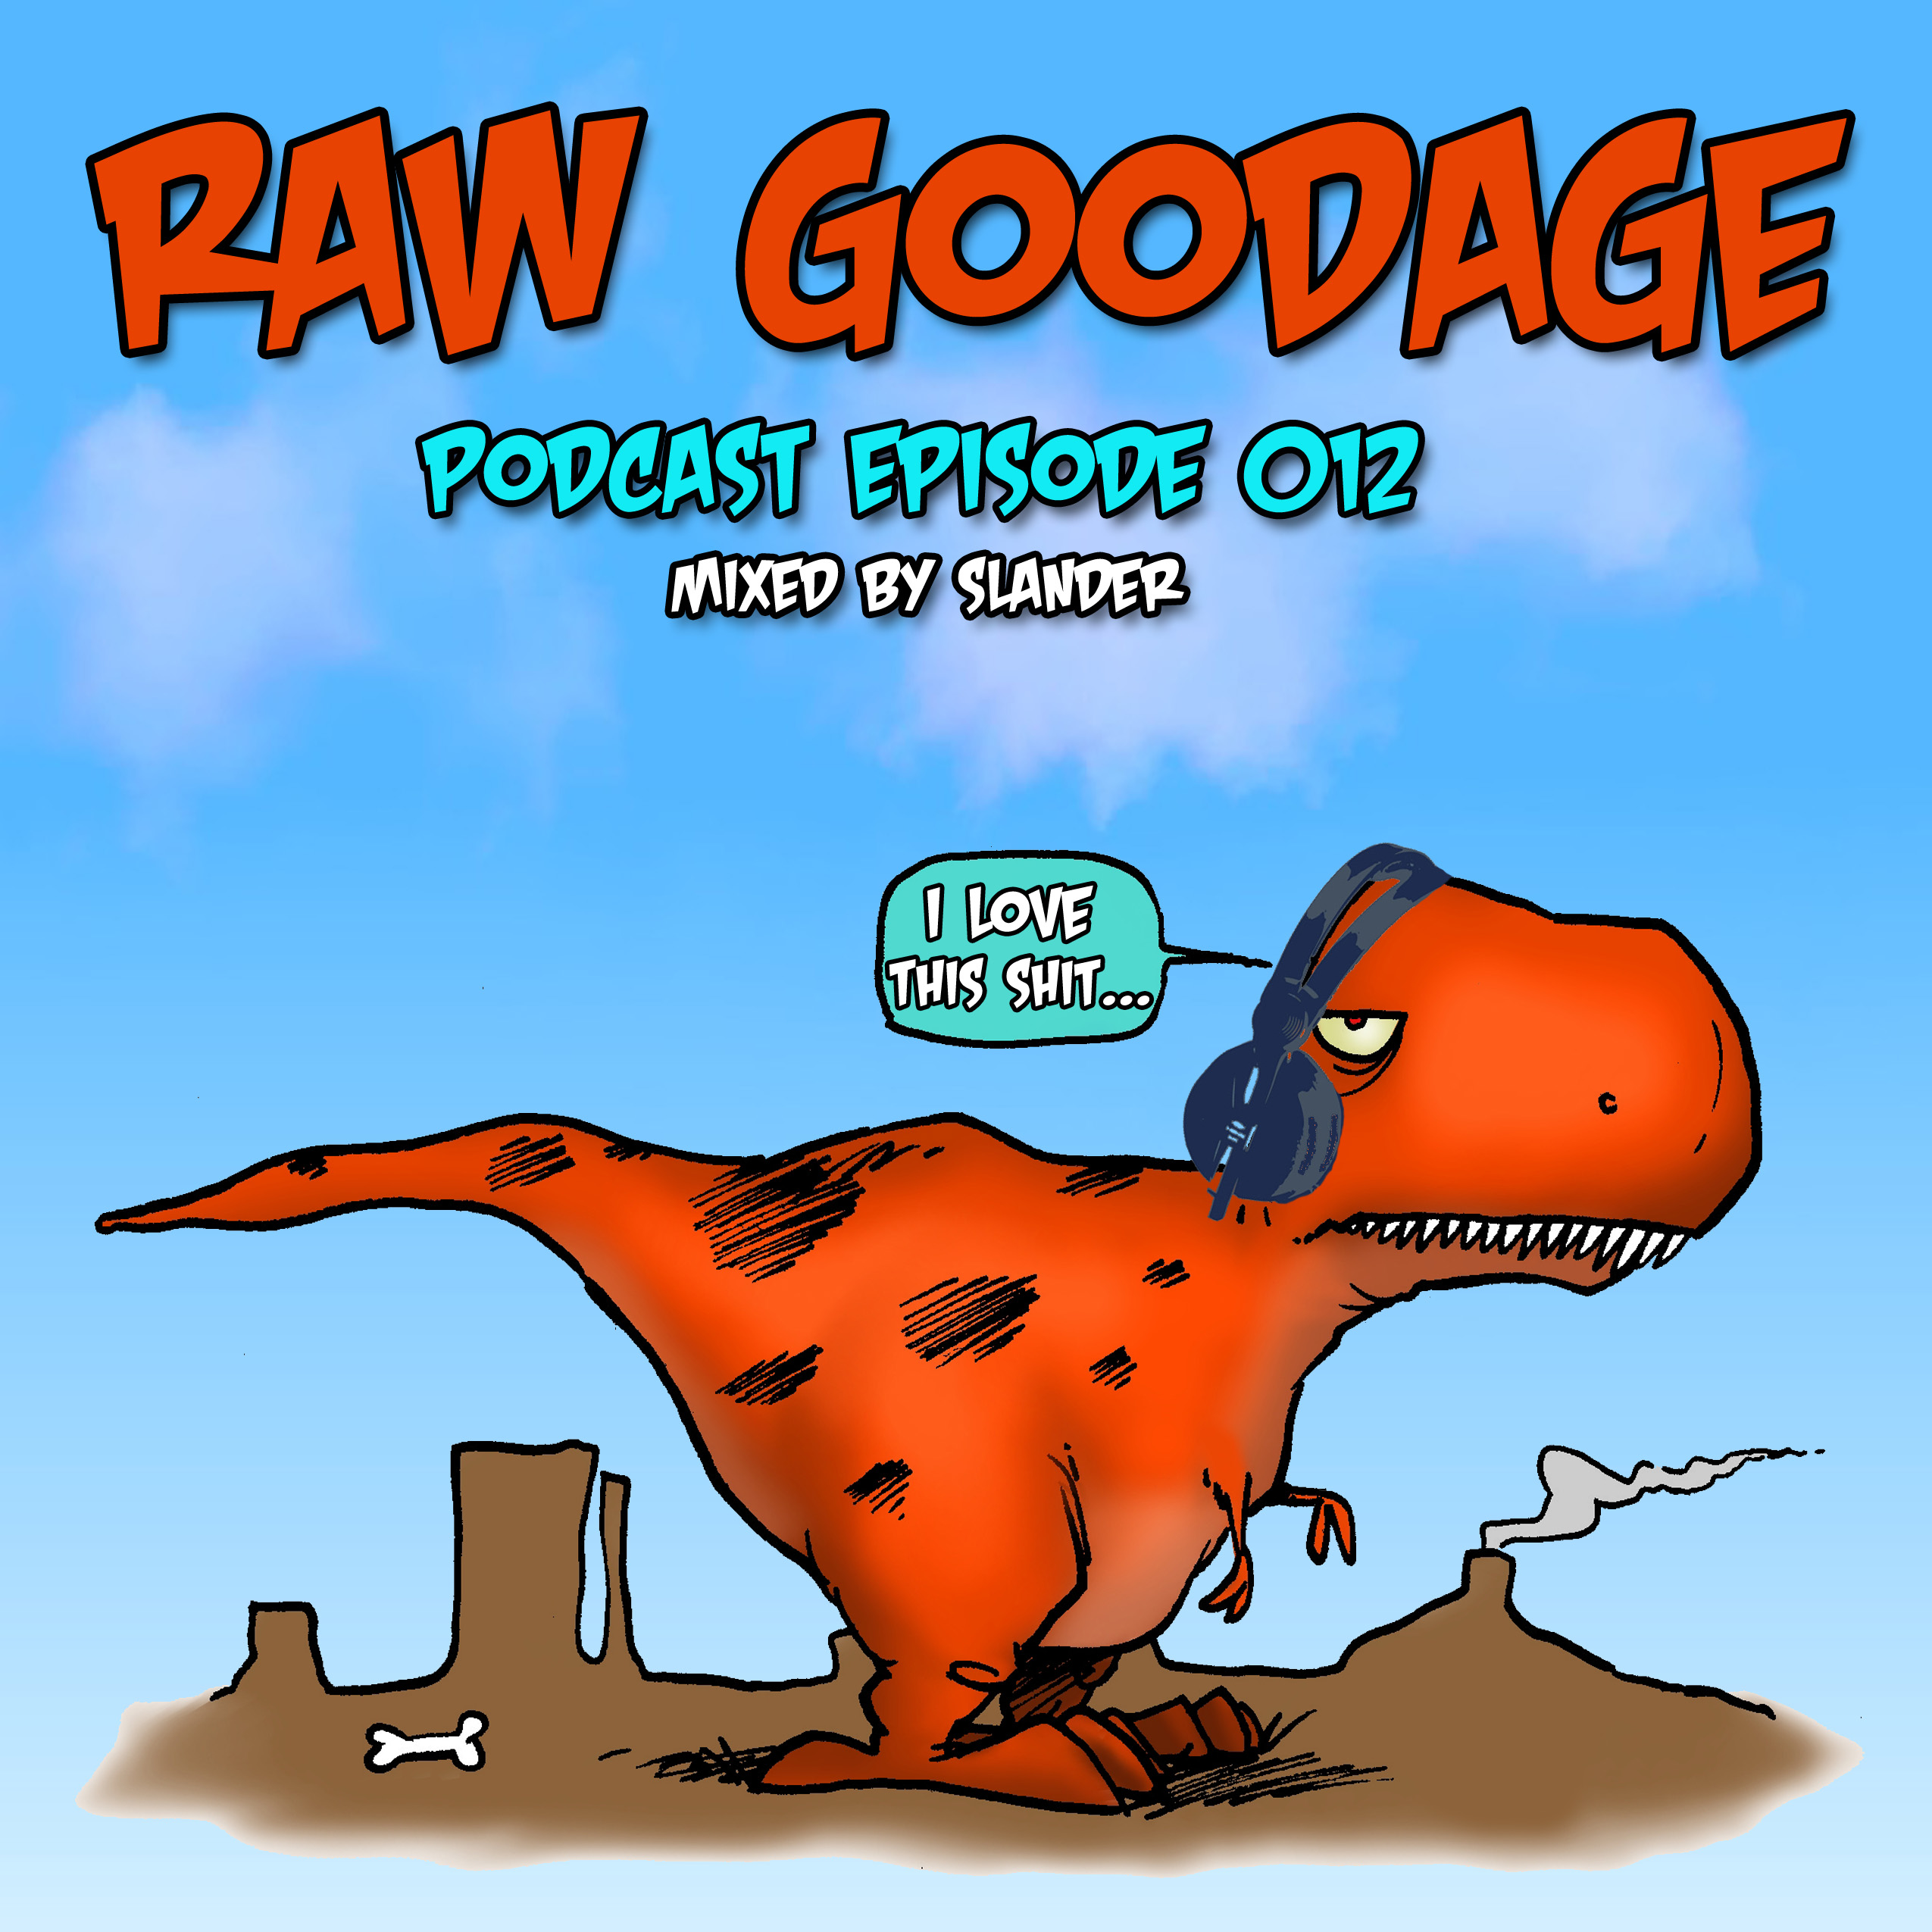 Raw Goodage Radio Episode 012 (Mixed by Slander)